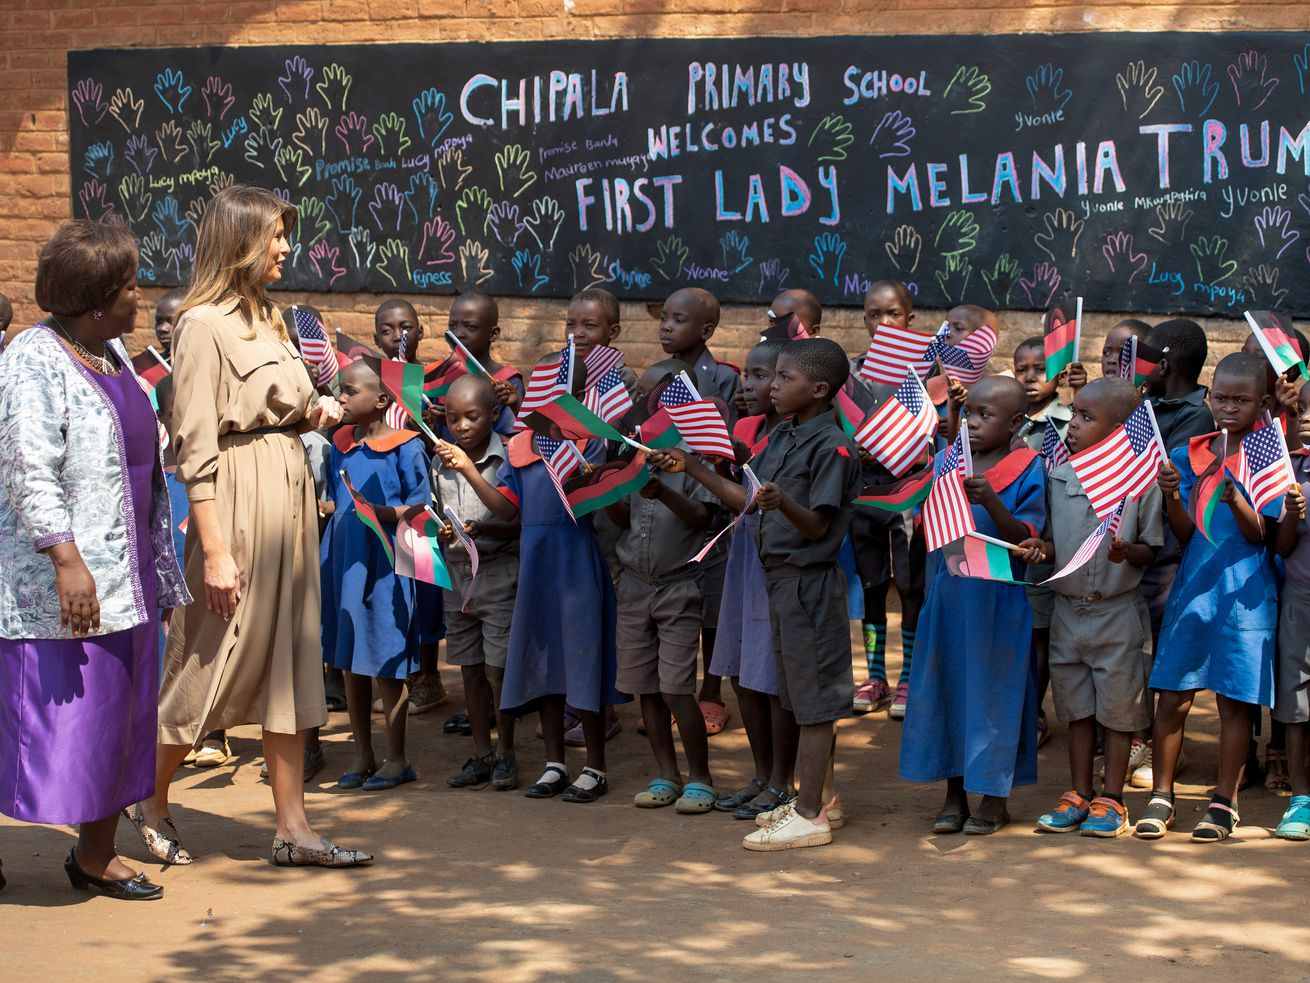 US first lady Melania Trump visits Chipala Primary School in Malawi on October 4, 2018. The school is among many in Malawi that receive funding from USAID for literacy programs.